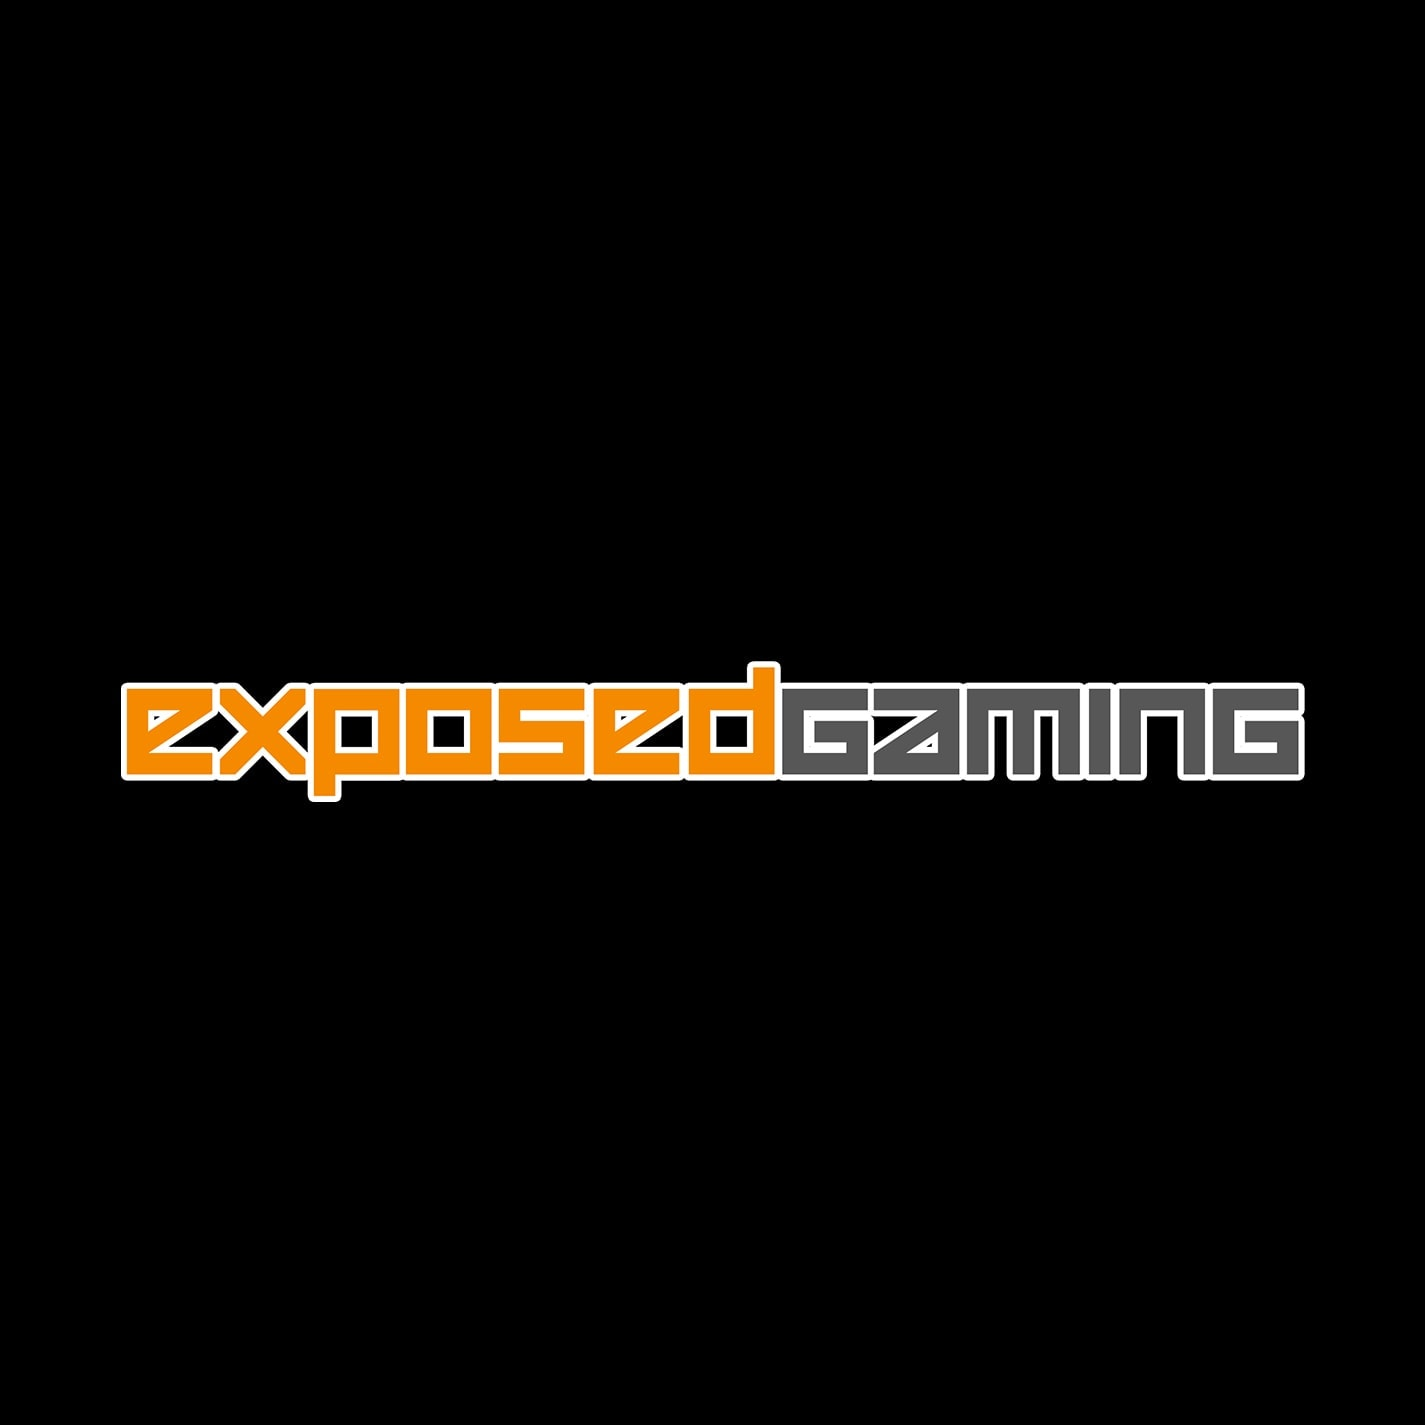 exposedgaming-logo-design-accolademedia